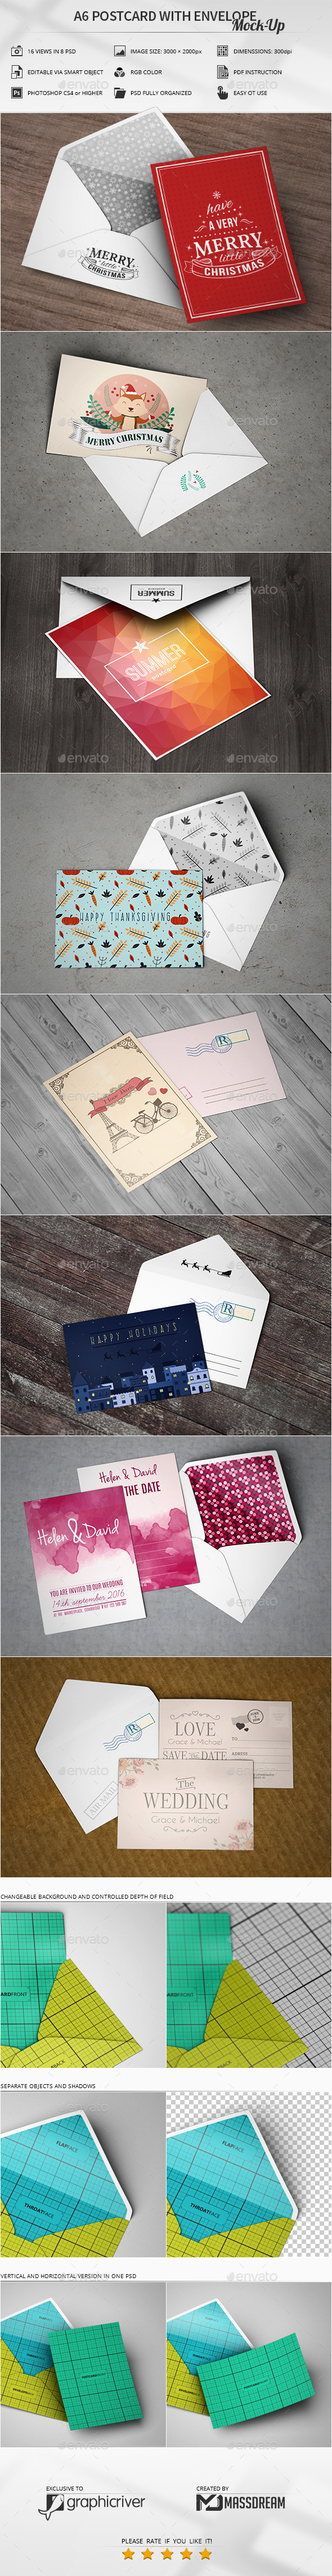 A6 Postcard with Envelope Mock-Up - Product Mock-Ups Graphics